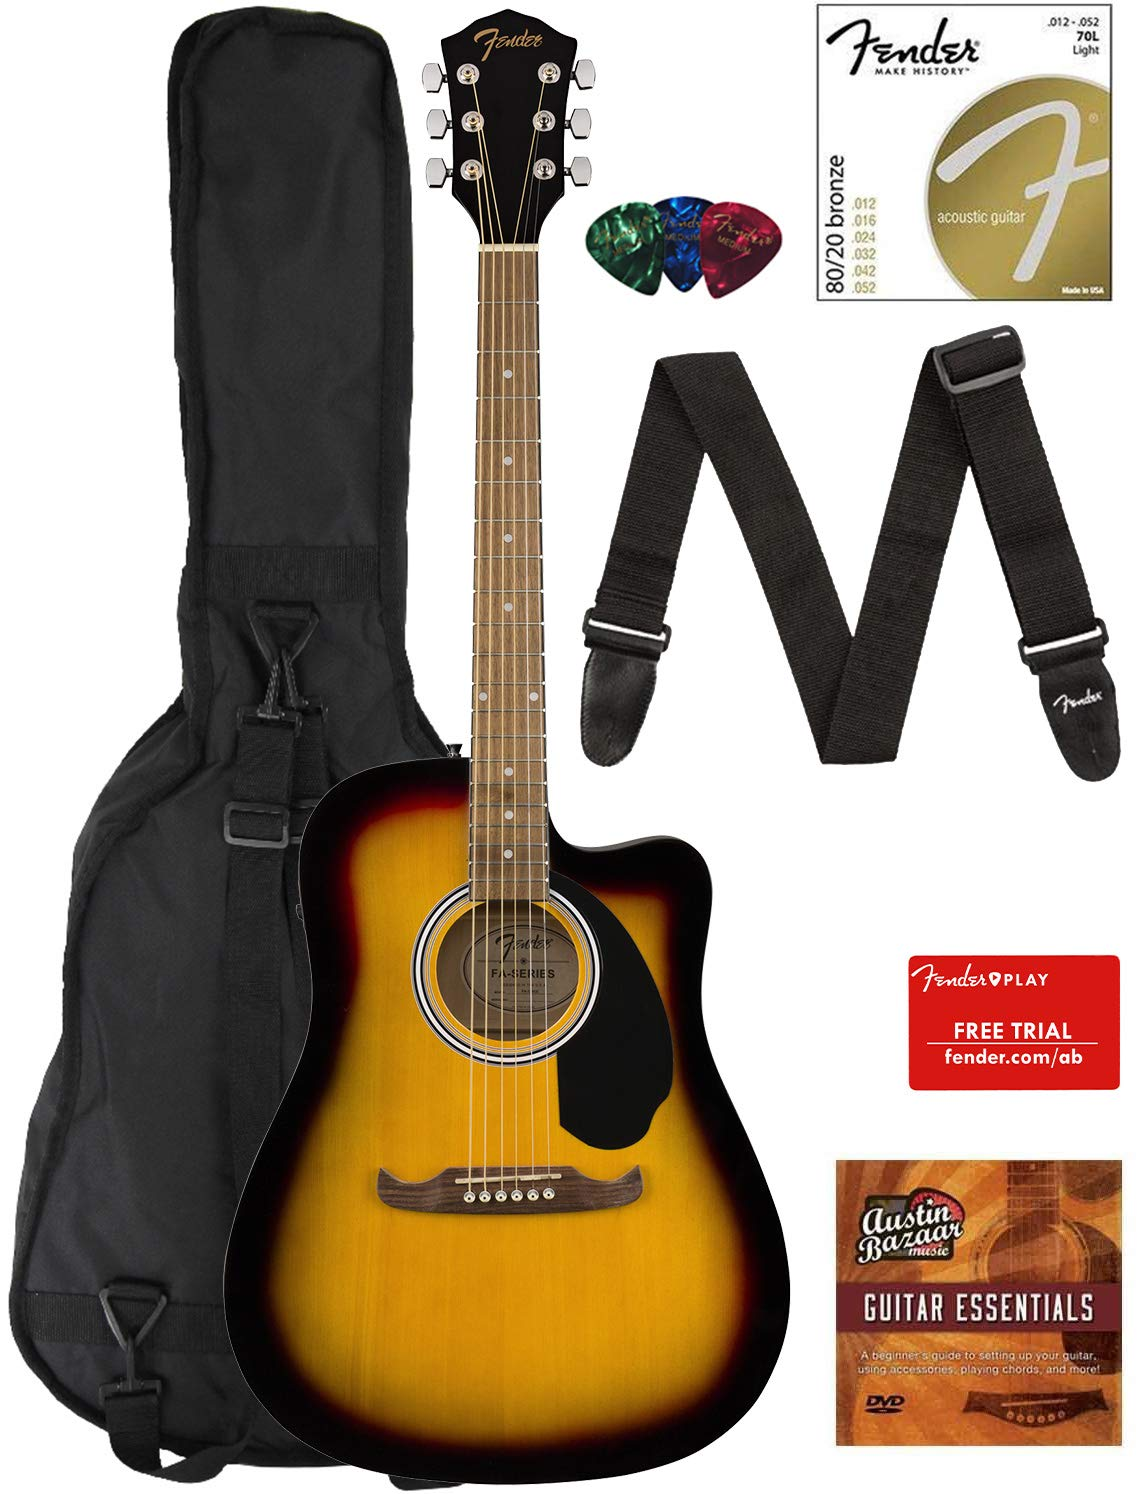 Contents of the Sunburst Fender FA-125CE Dreadnought Cutaway AEG Bundle with Gig Bag